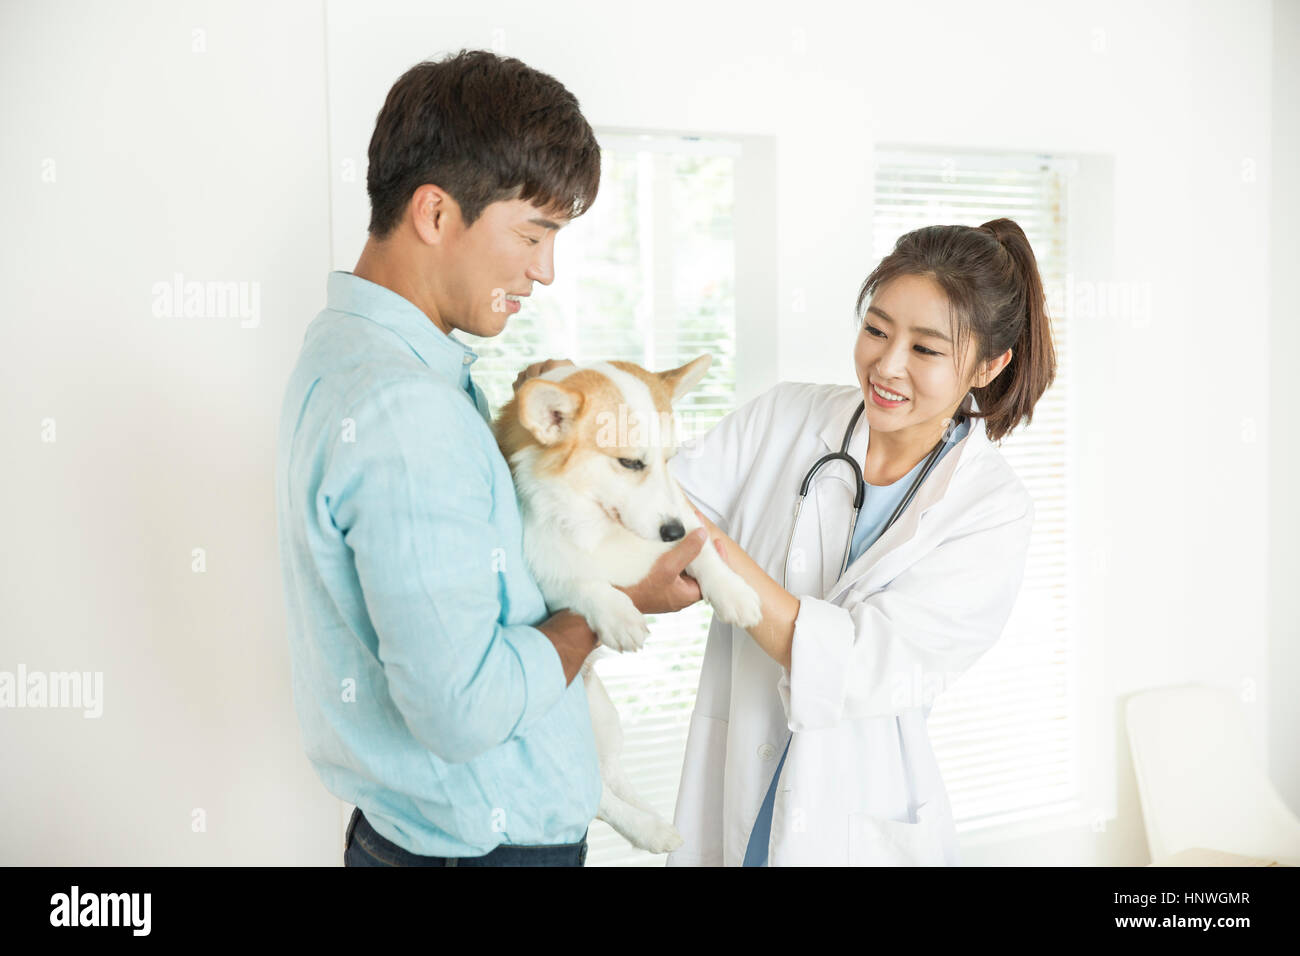 Man visiting a vet for his pet - Stock Image